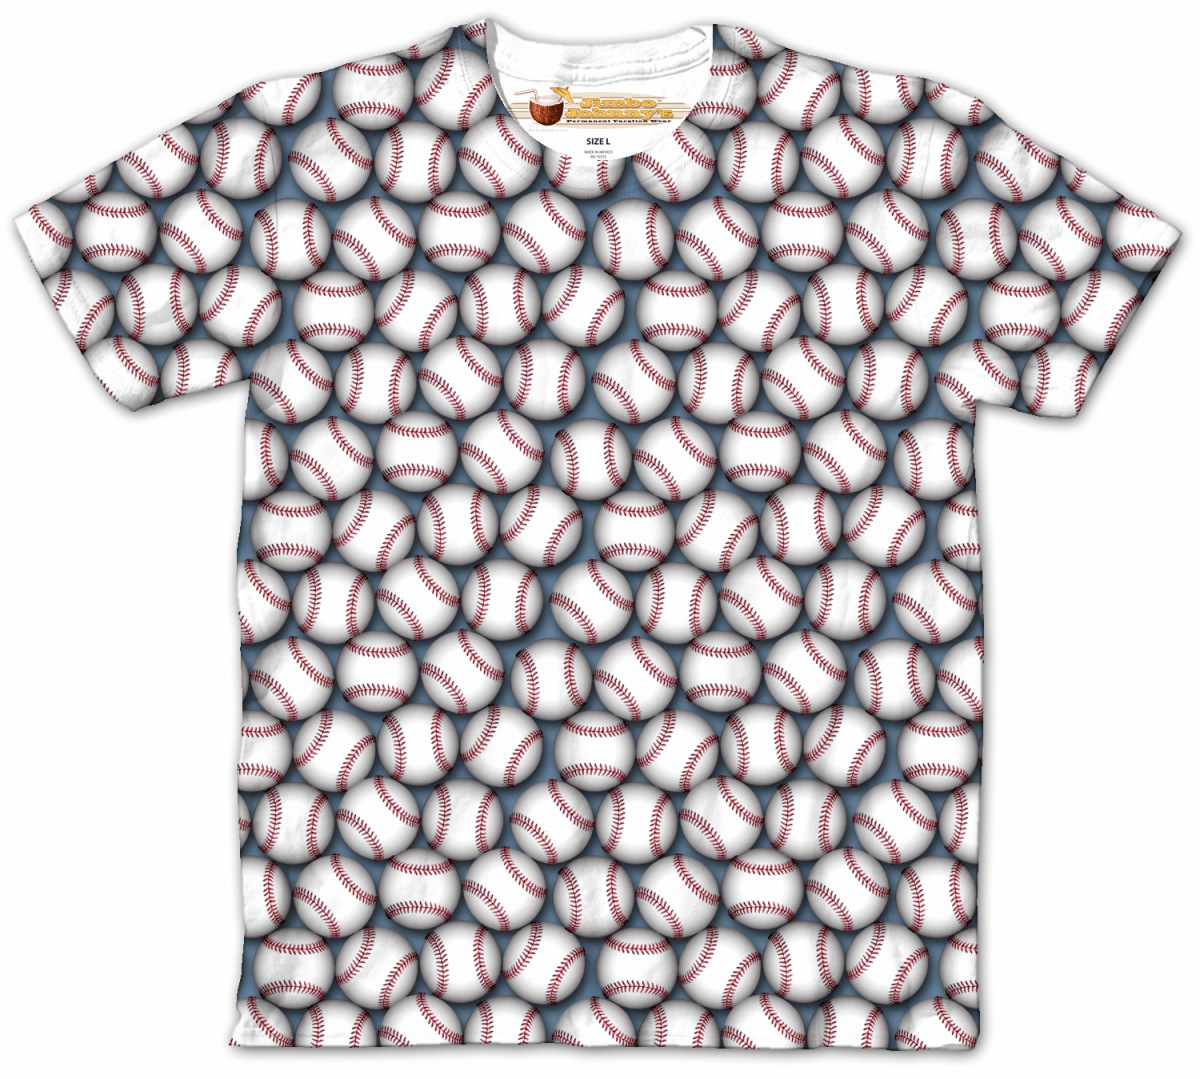 Lots of Baseballs Crew Design Sublimated Adult T-Shirt